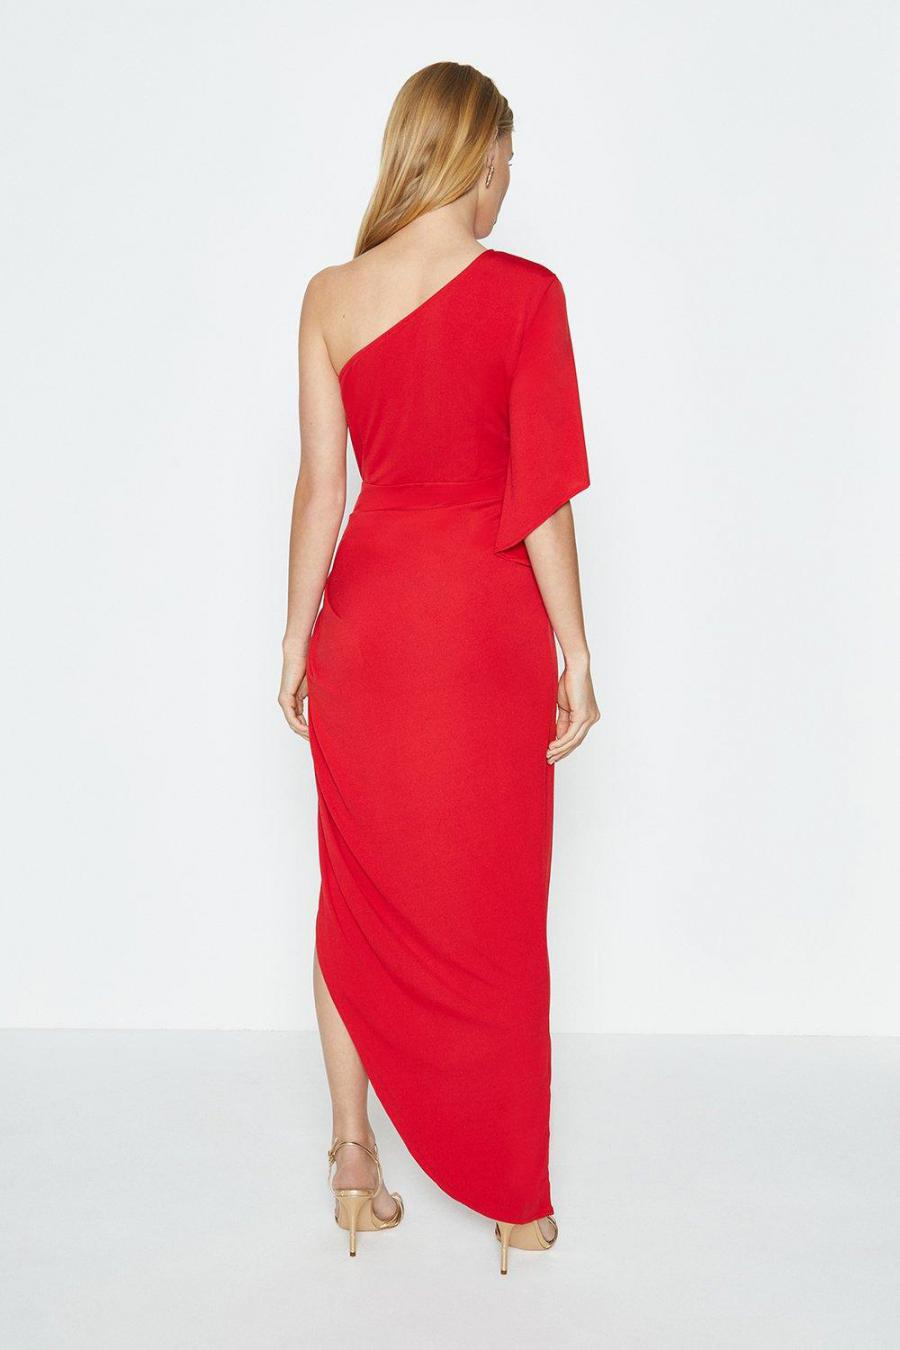 Coast A Line Dresses | Womens One Shoulder Jersey Maxi Dress Red